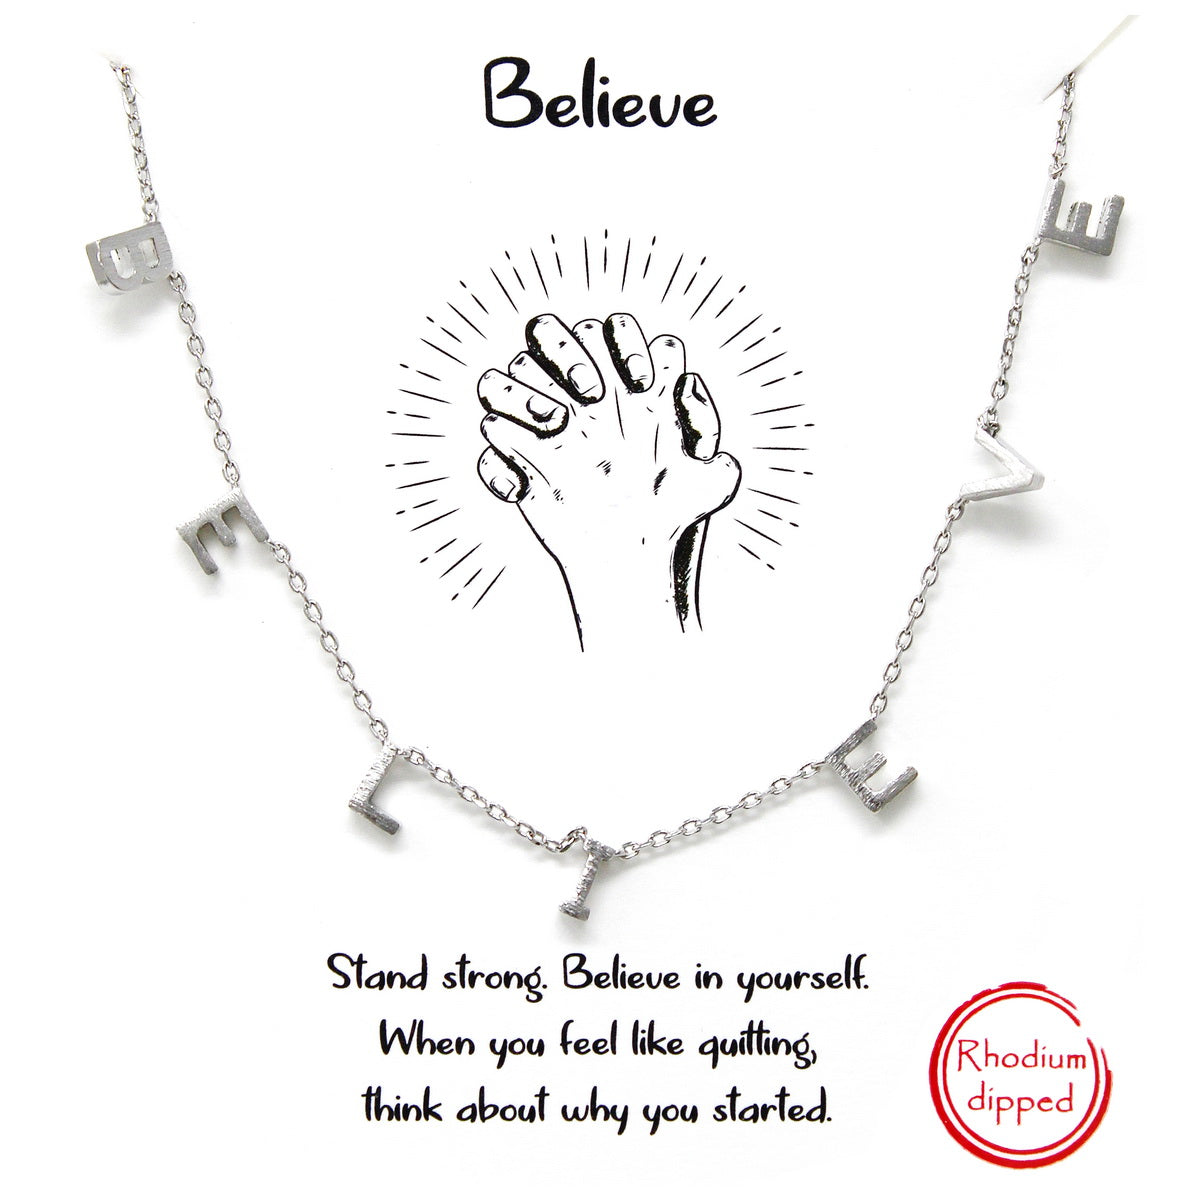 Tell Your Story: BELIEVE Spaced Letter Charm Short Chain Necklace